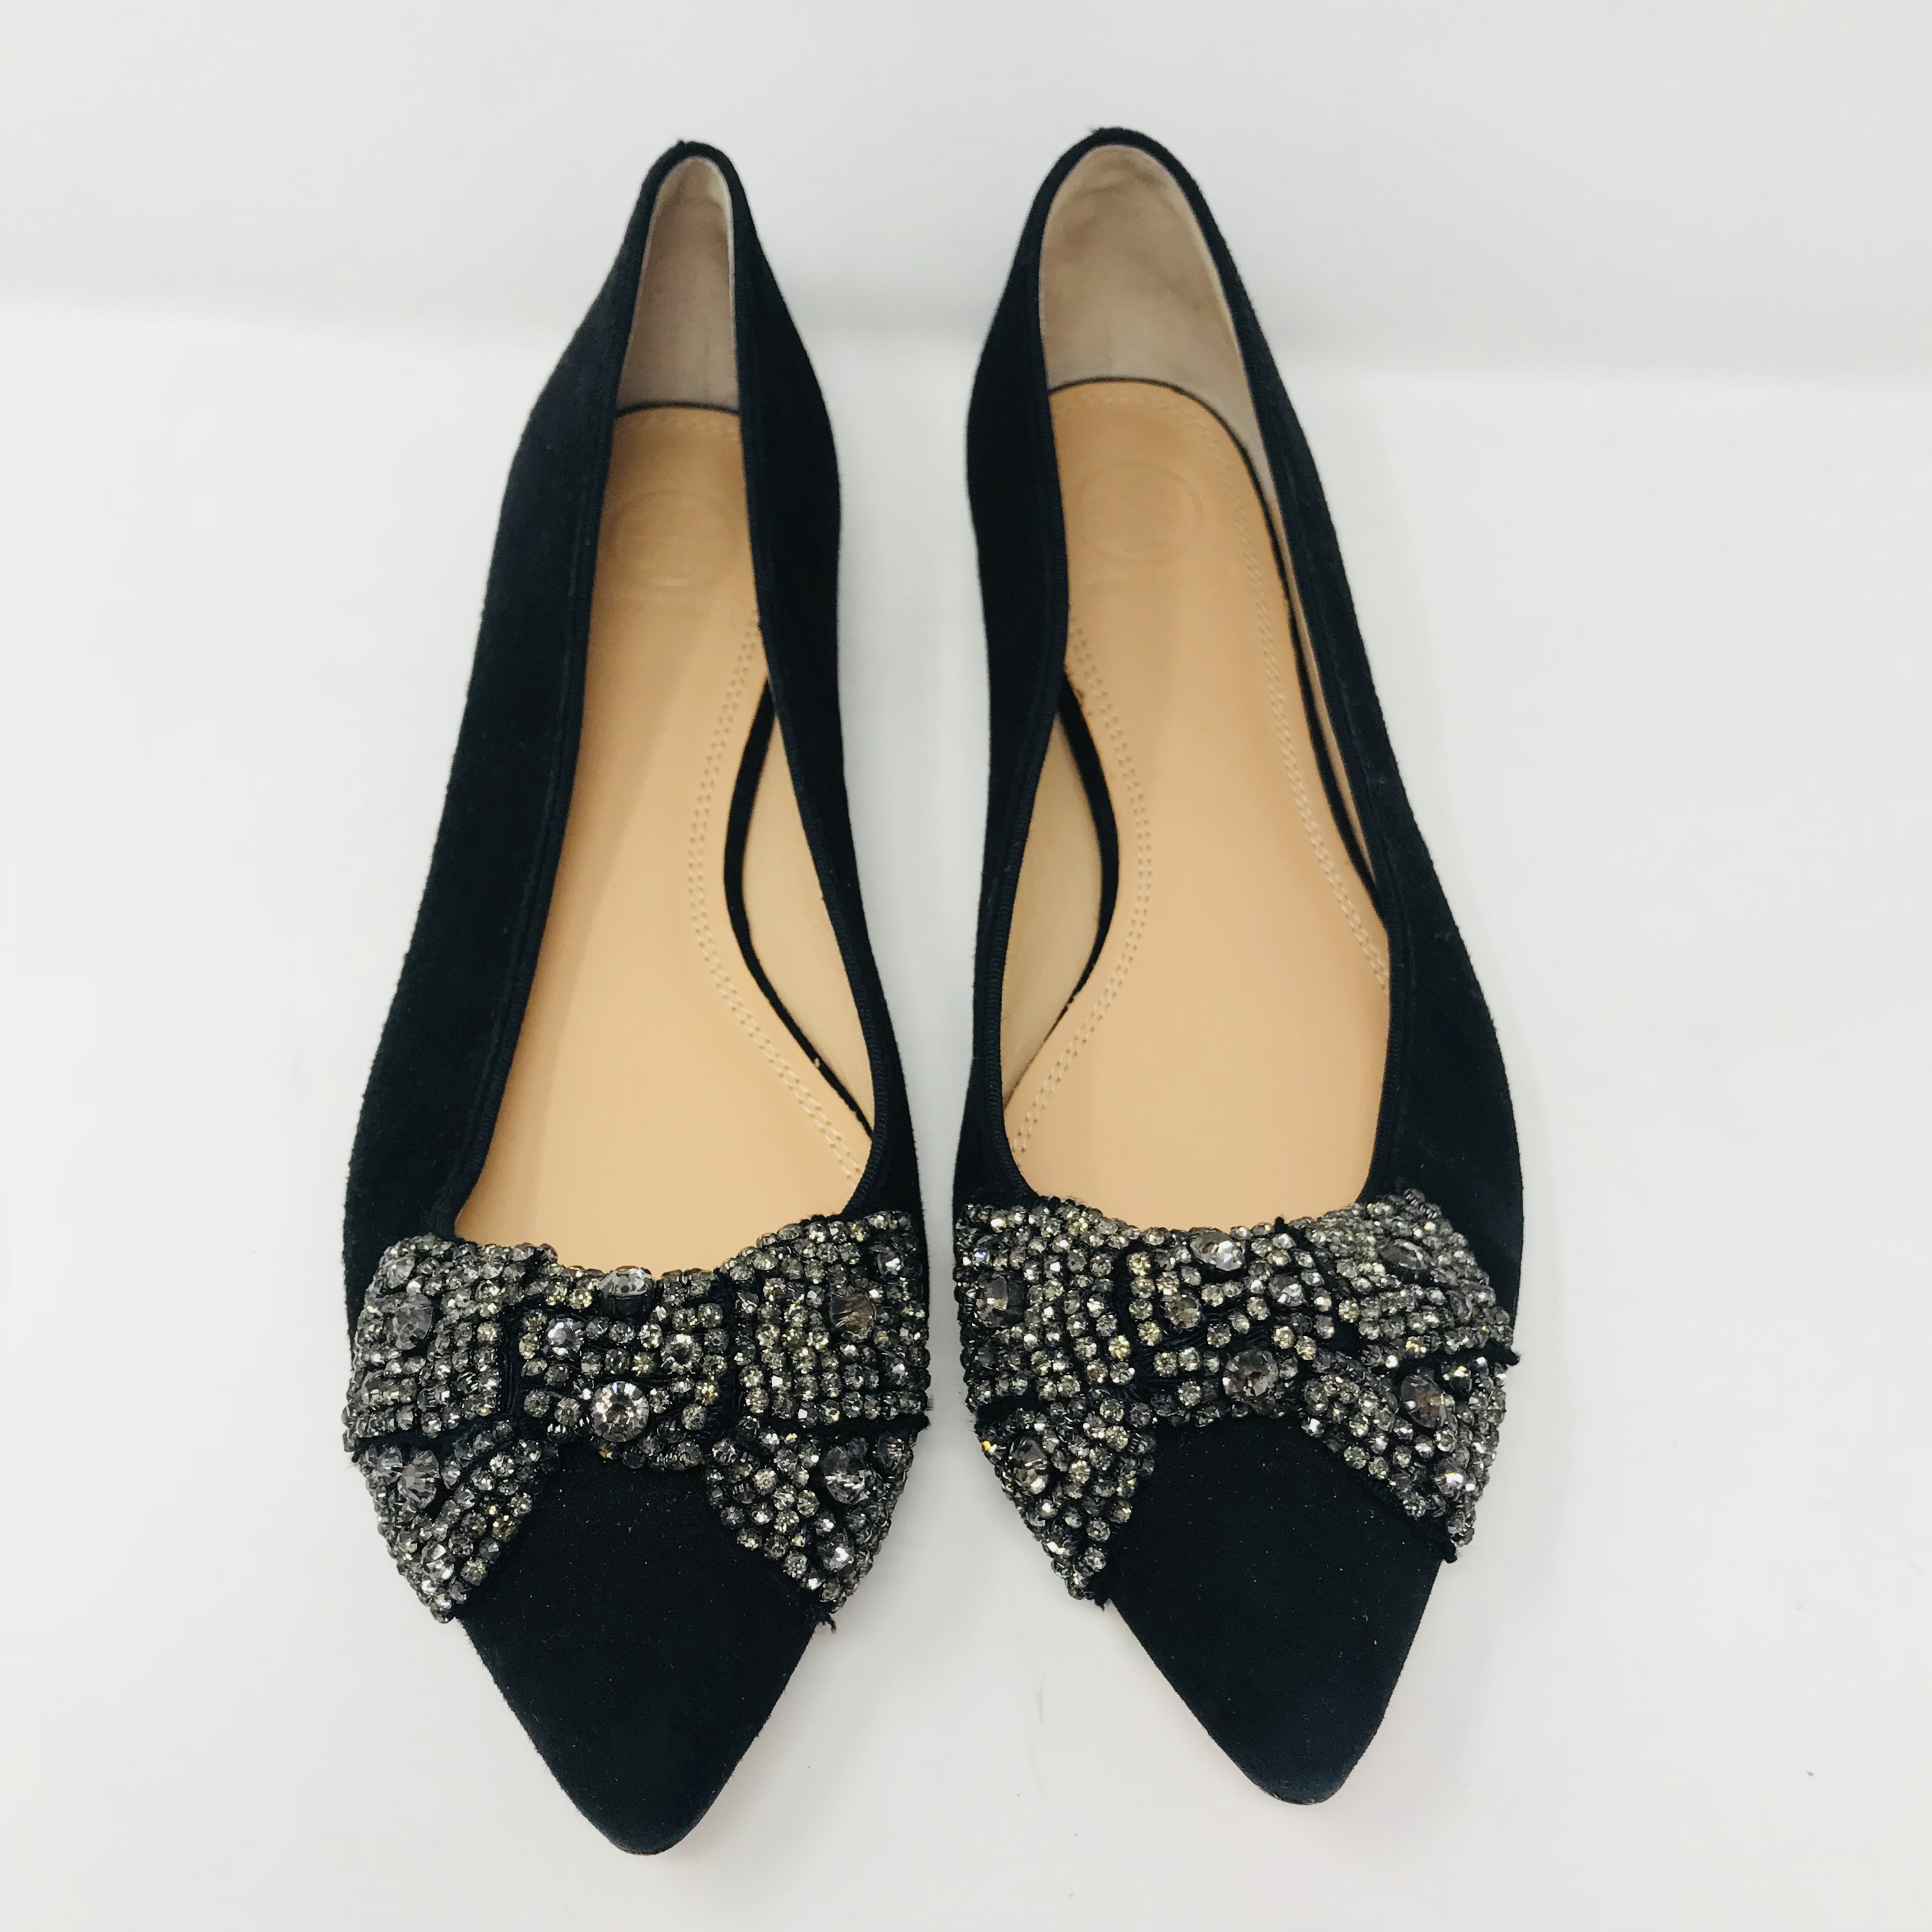 Tory Shoes Price: $86.99